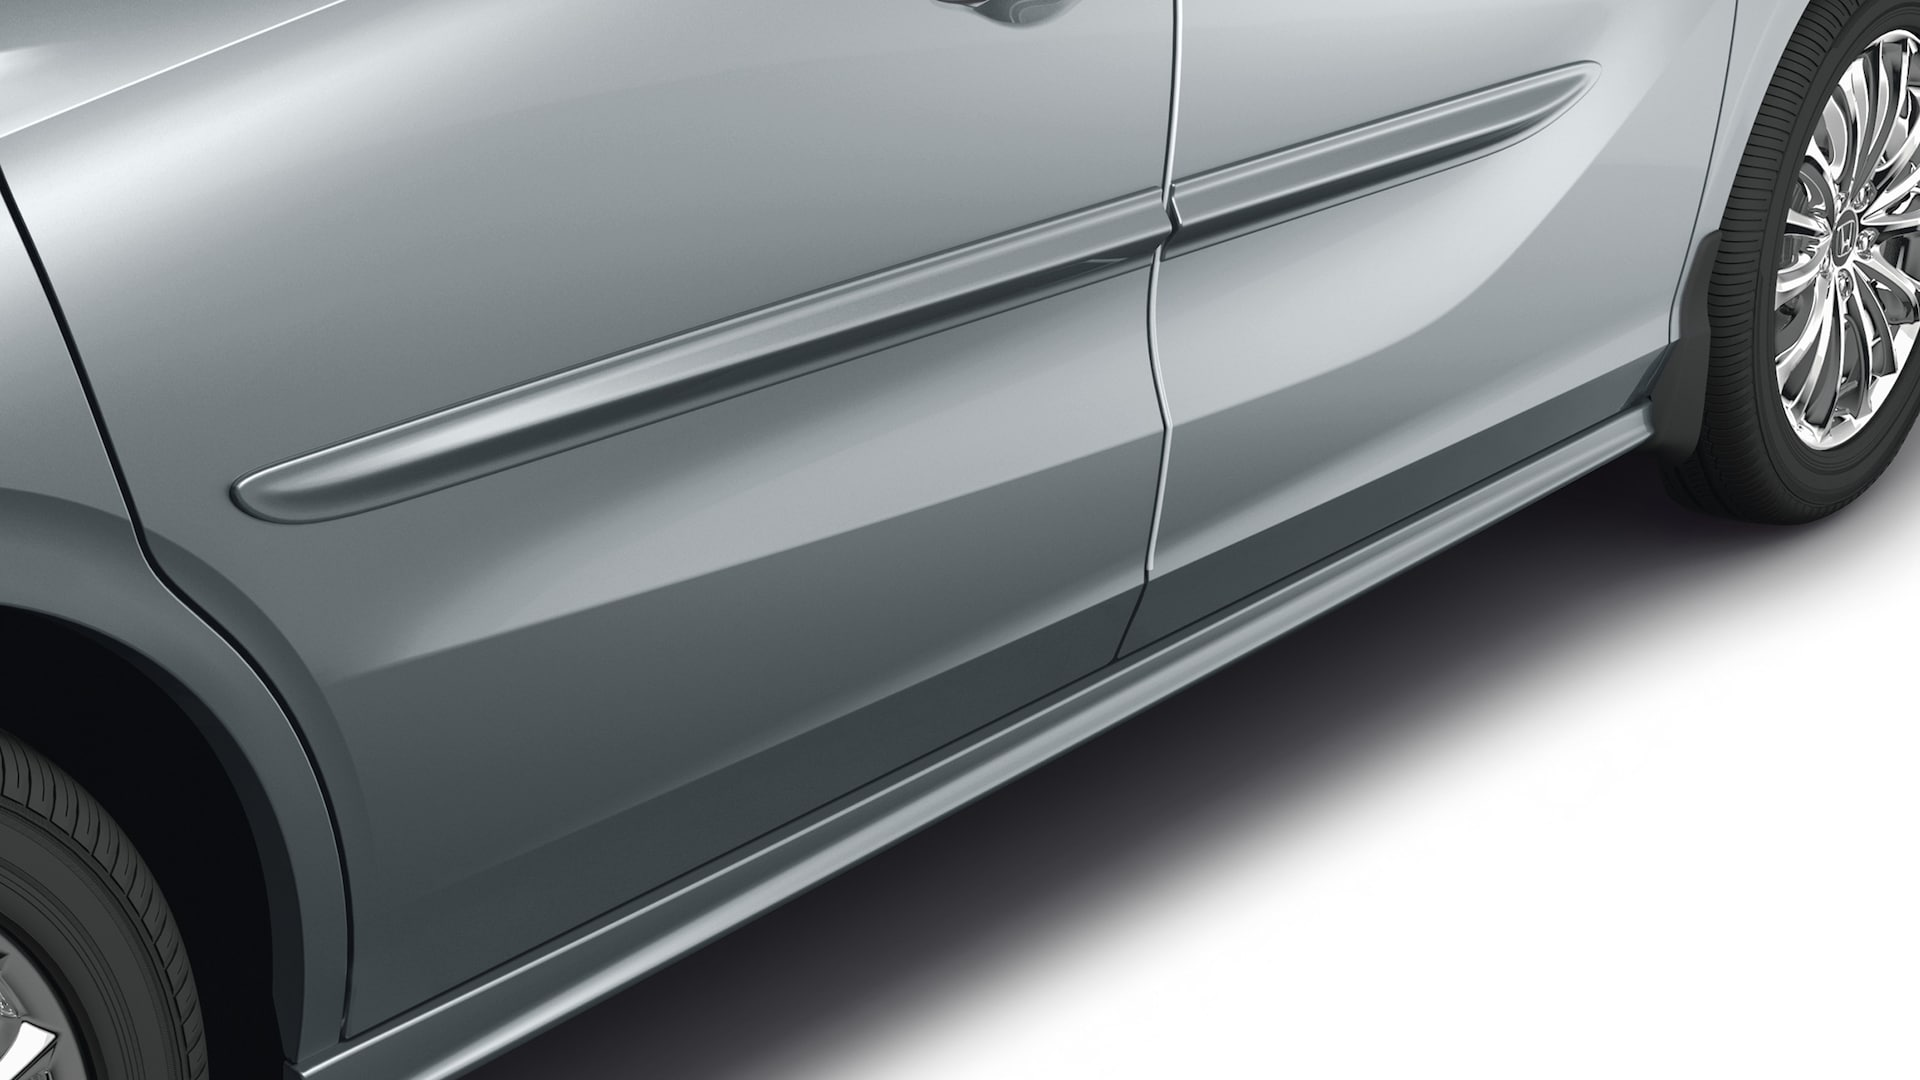 Detail of 2020 Honda Odyssey accessory body side molding.